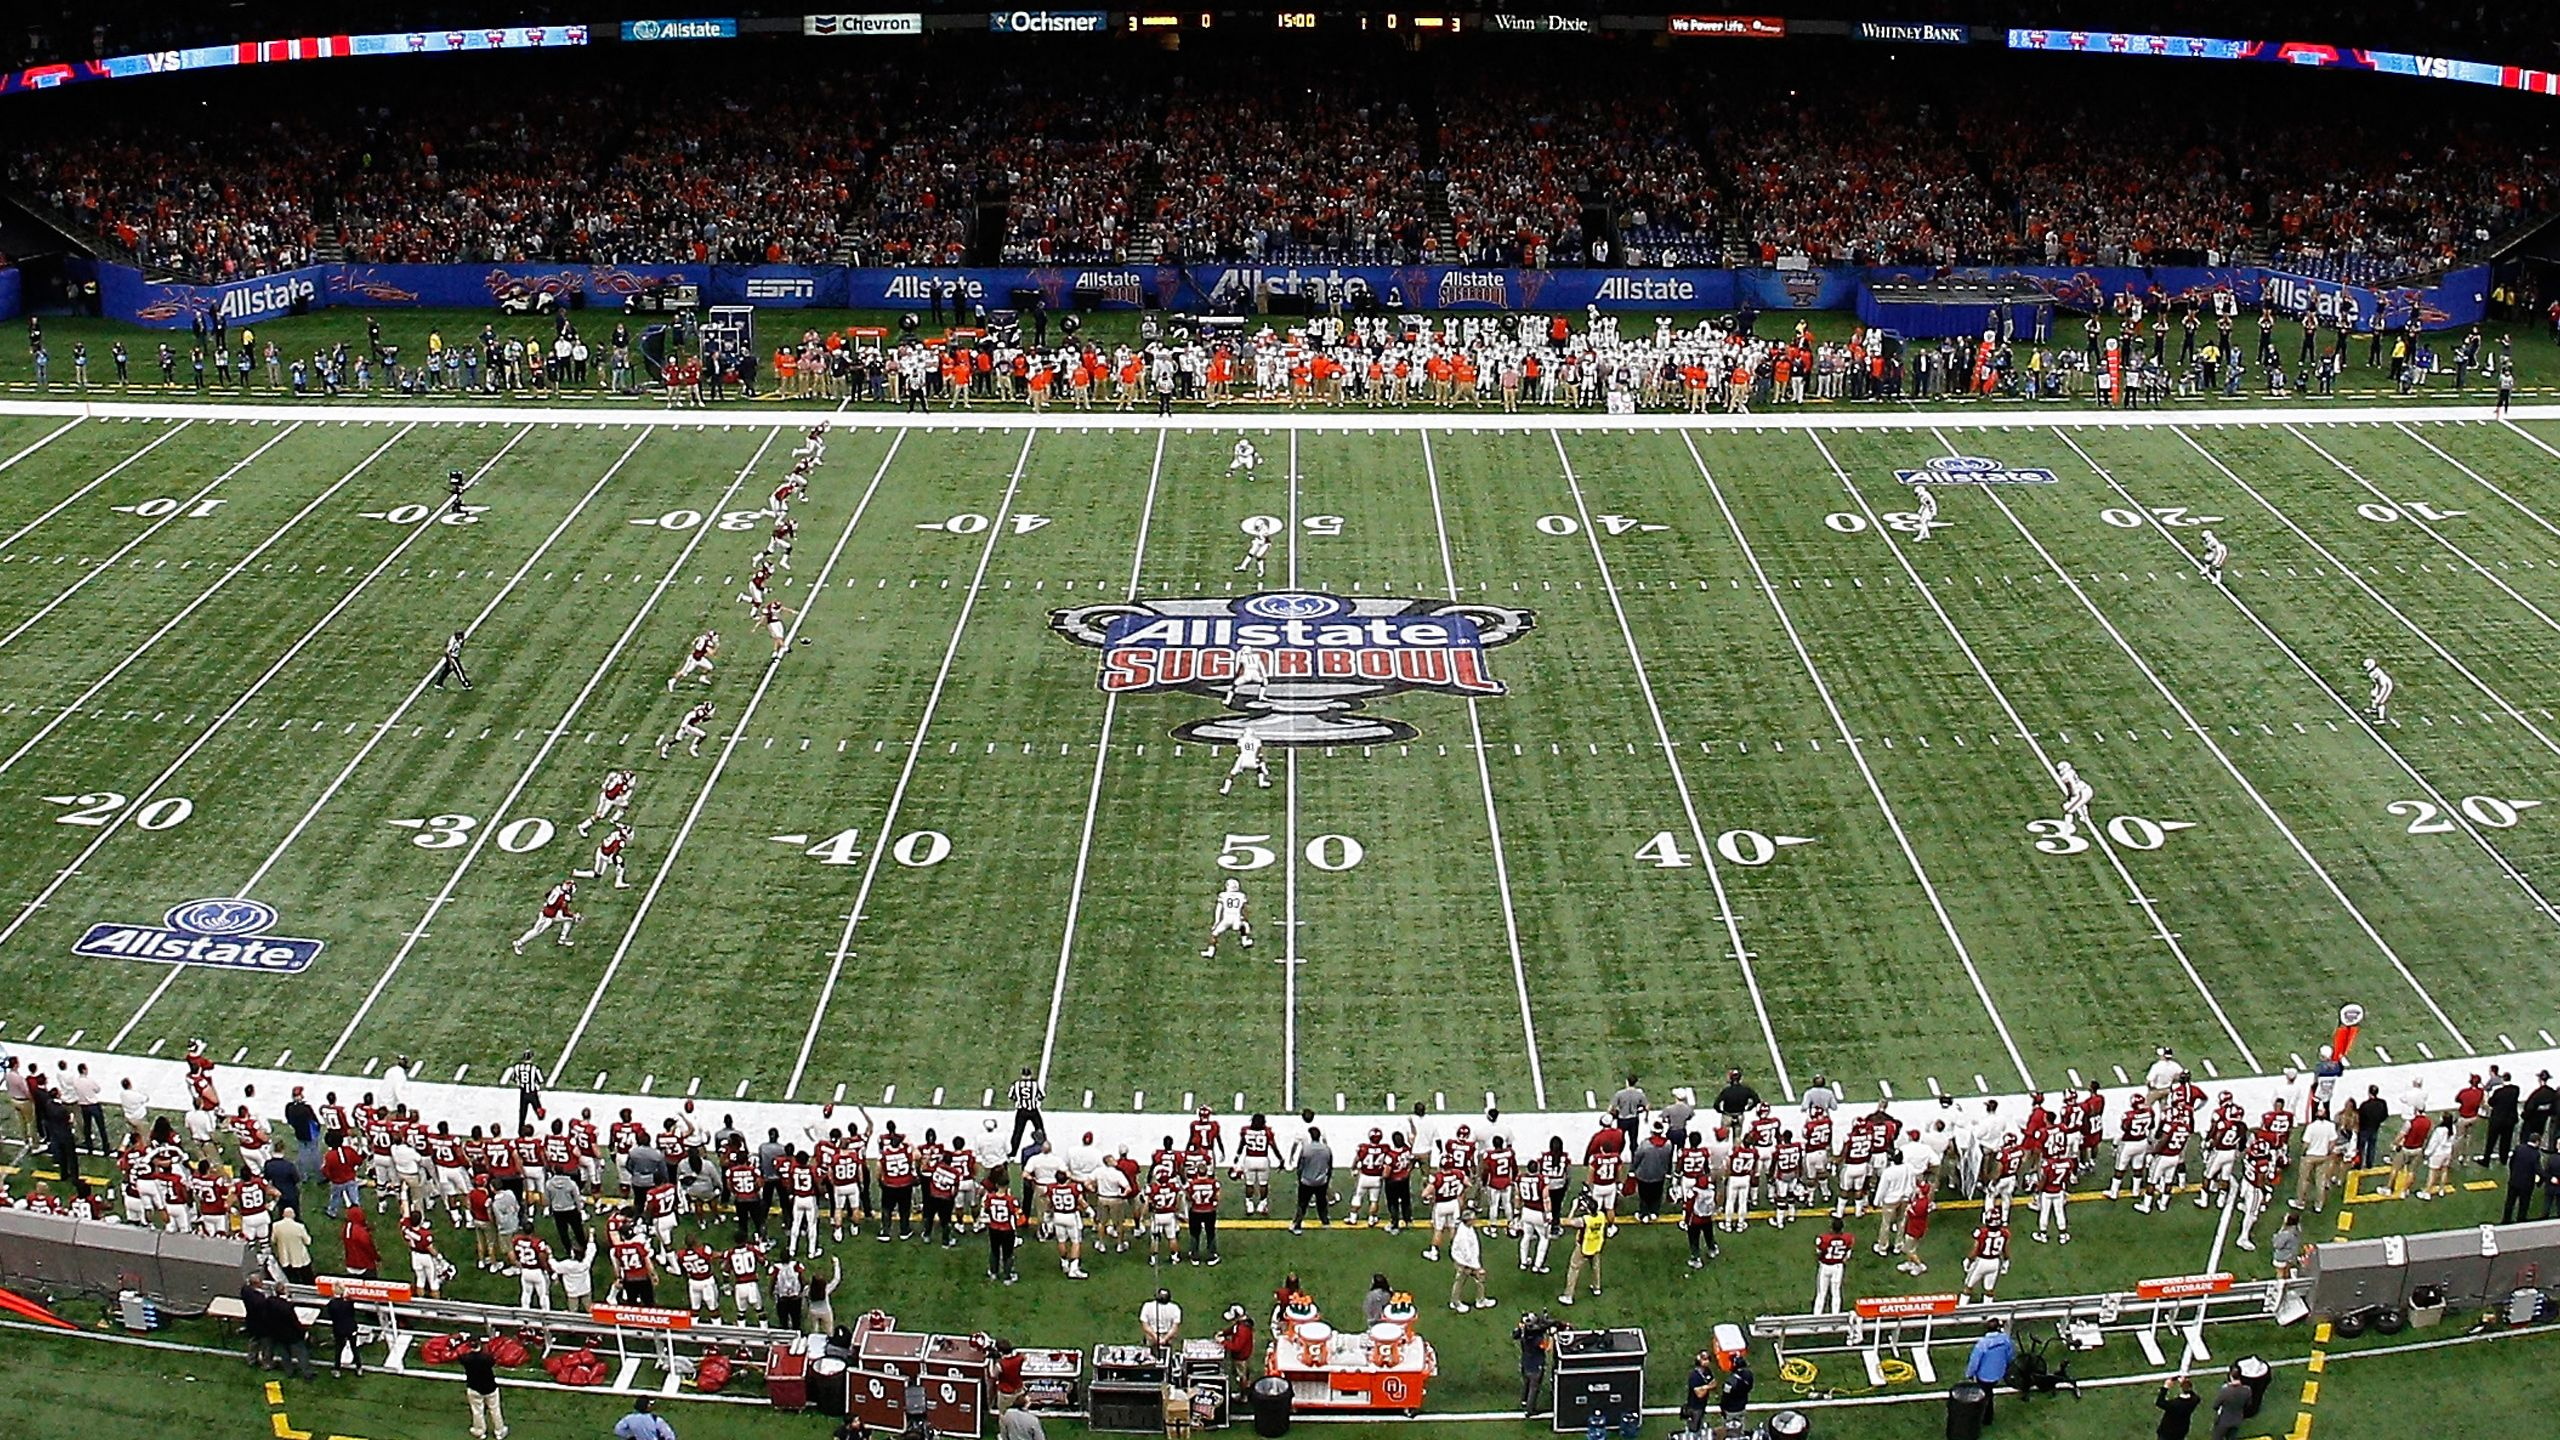 All-22: 2018 CFP Semifinal at the Allstate Sugar Bowl